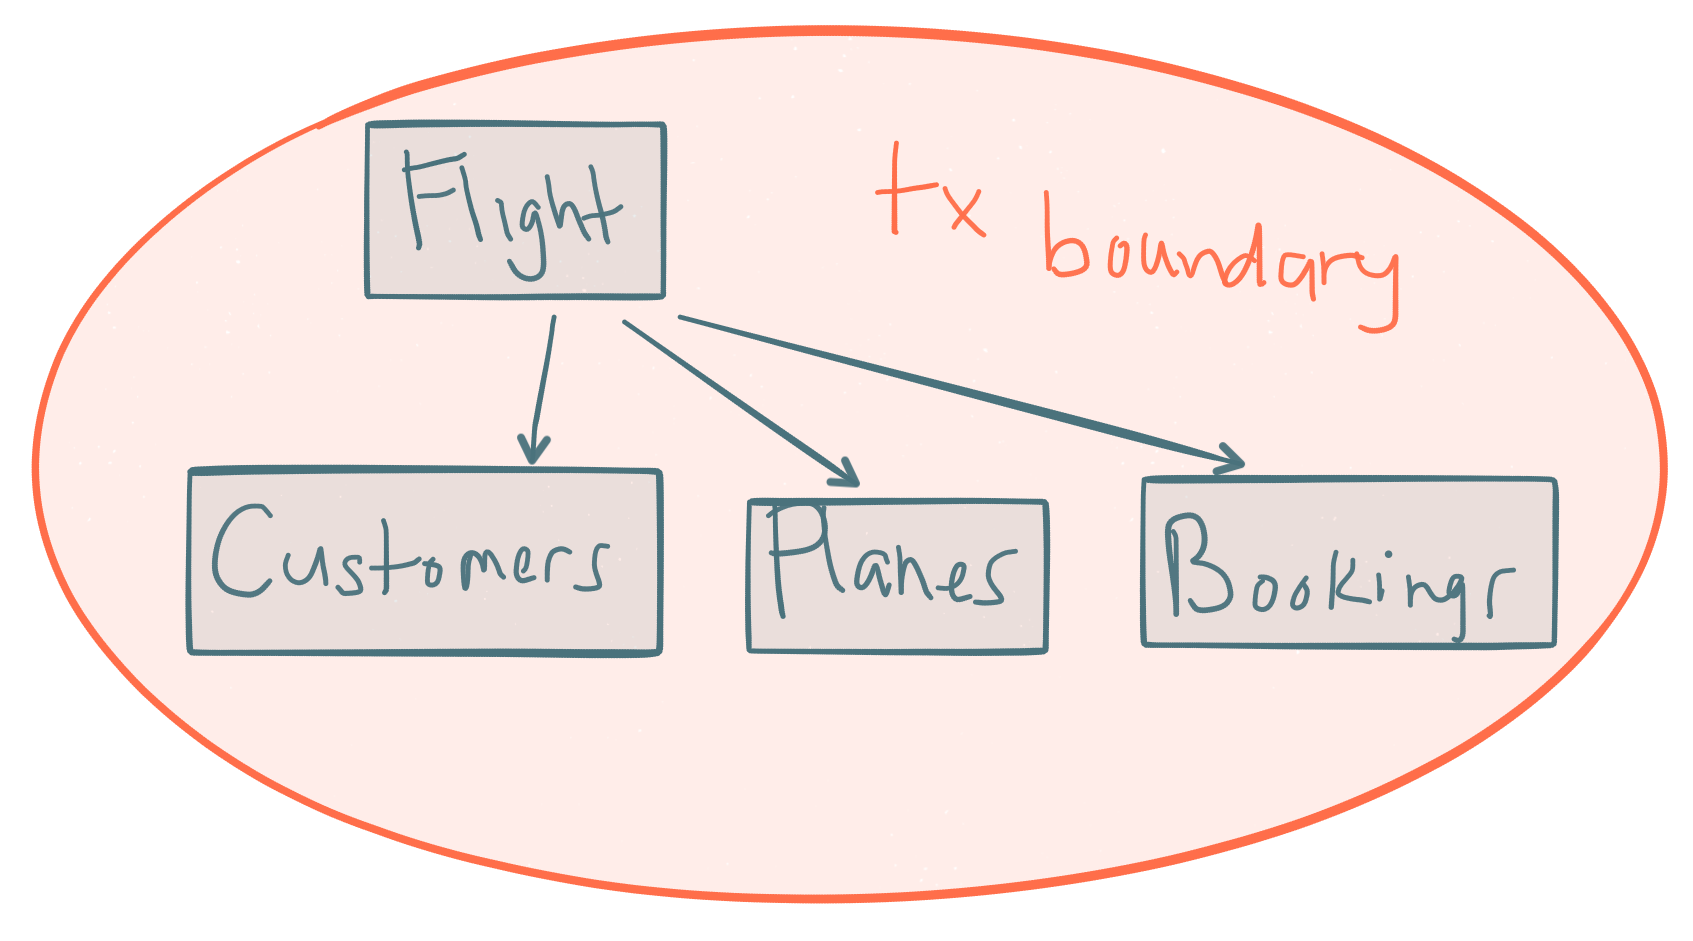 transactional boundaries in micorservices